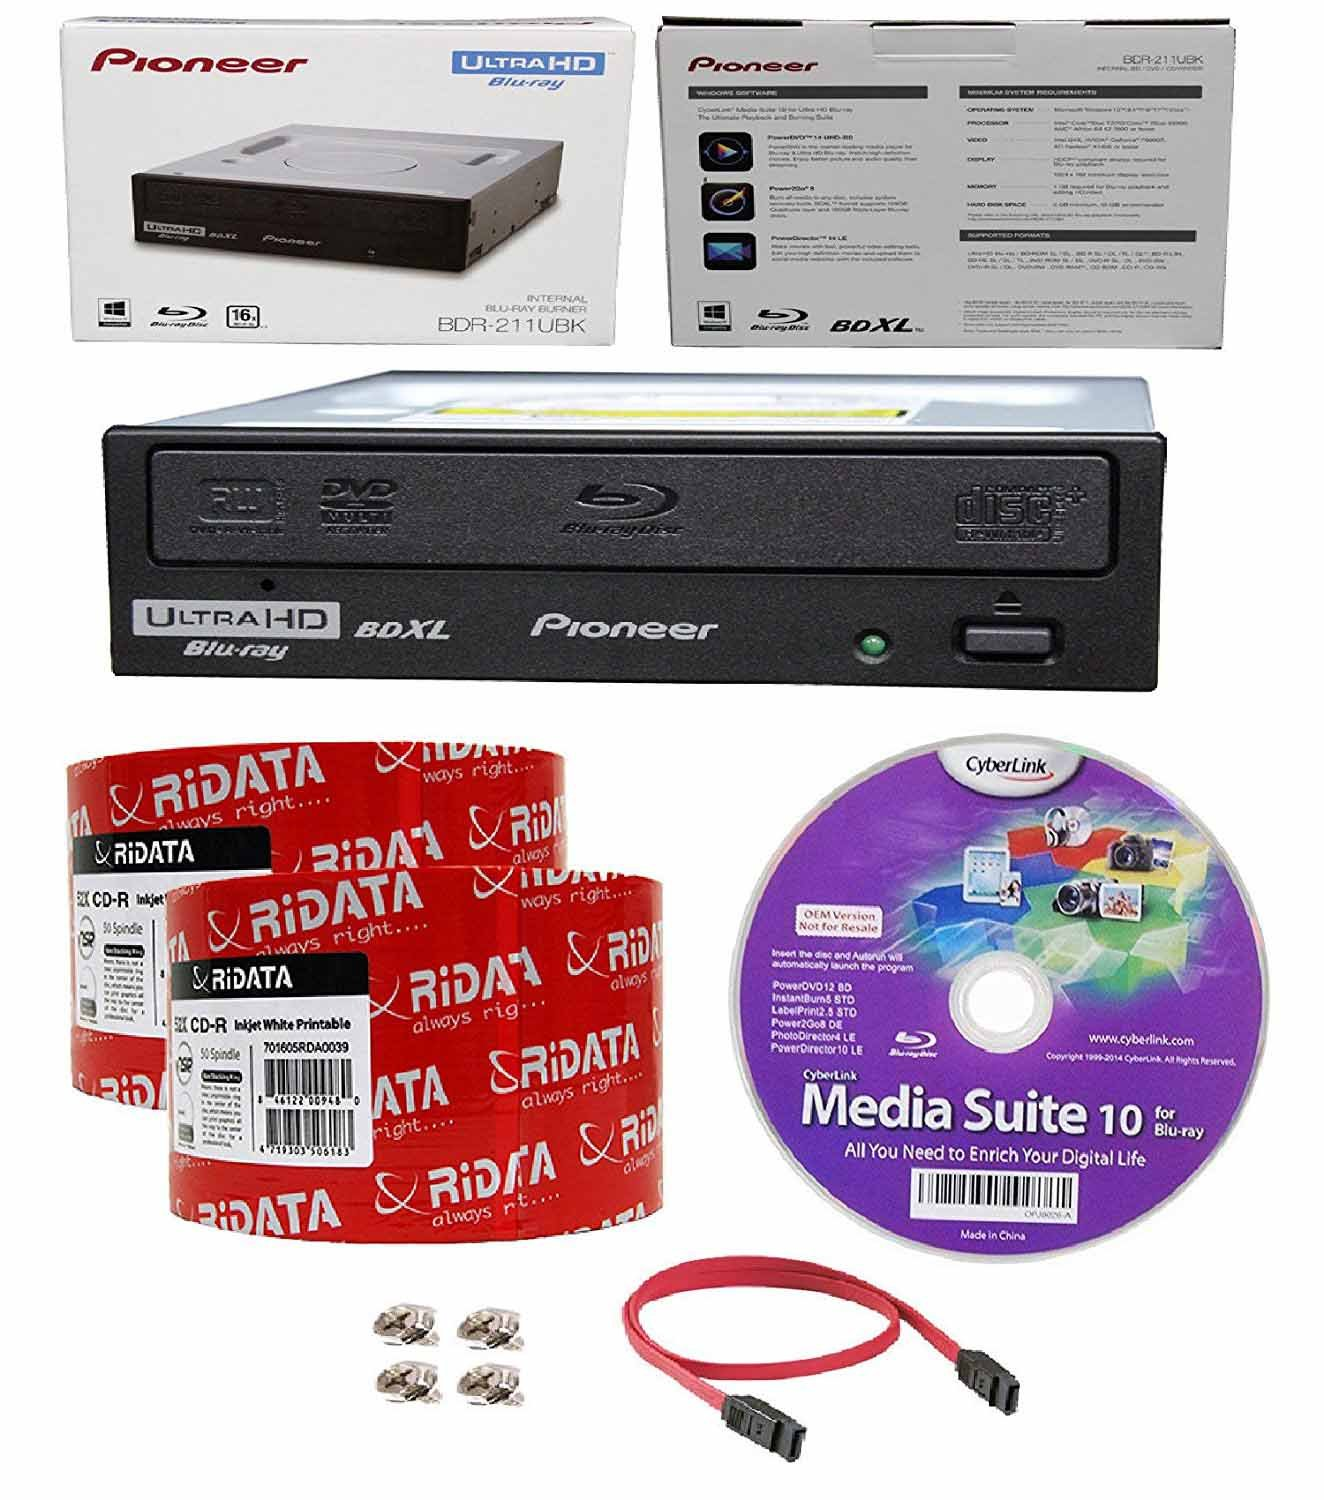 Pioneer 16x BDR-211UBK Internal Ultra HD Blu-ray BDXL Burner, Cyberlink Software and Cable Accessories Bundle with 100pk CD-R RiDATA White Inkjet Printable